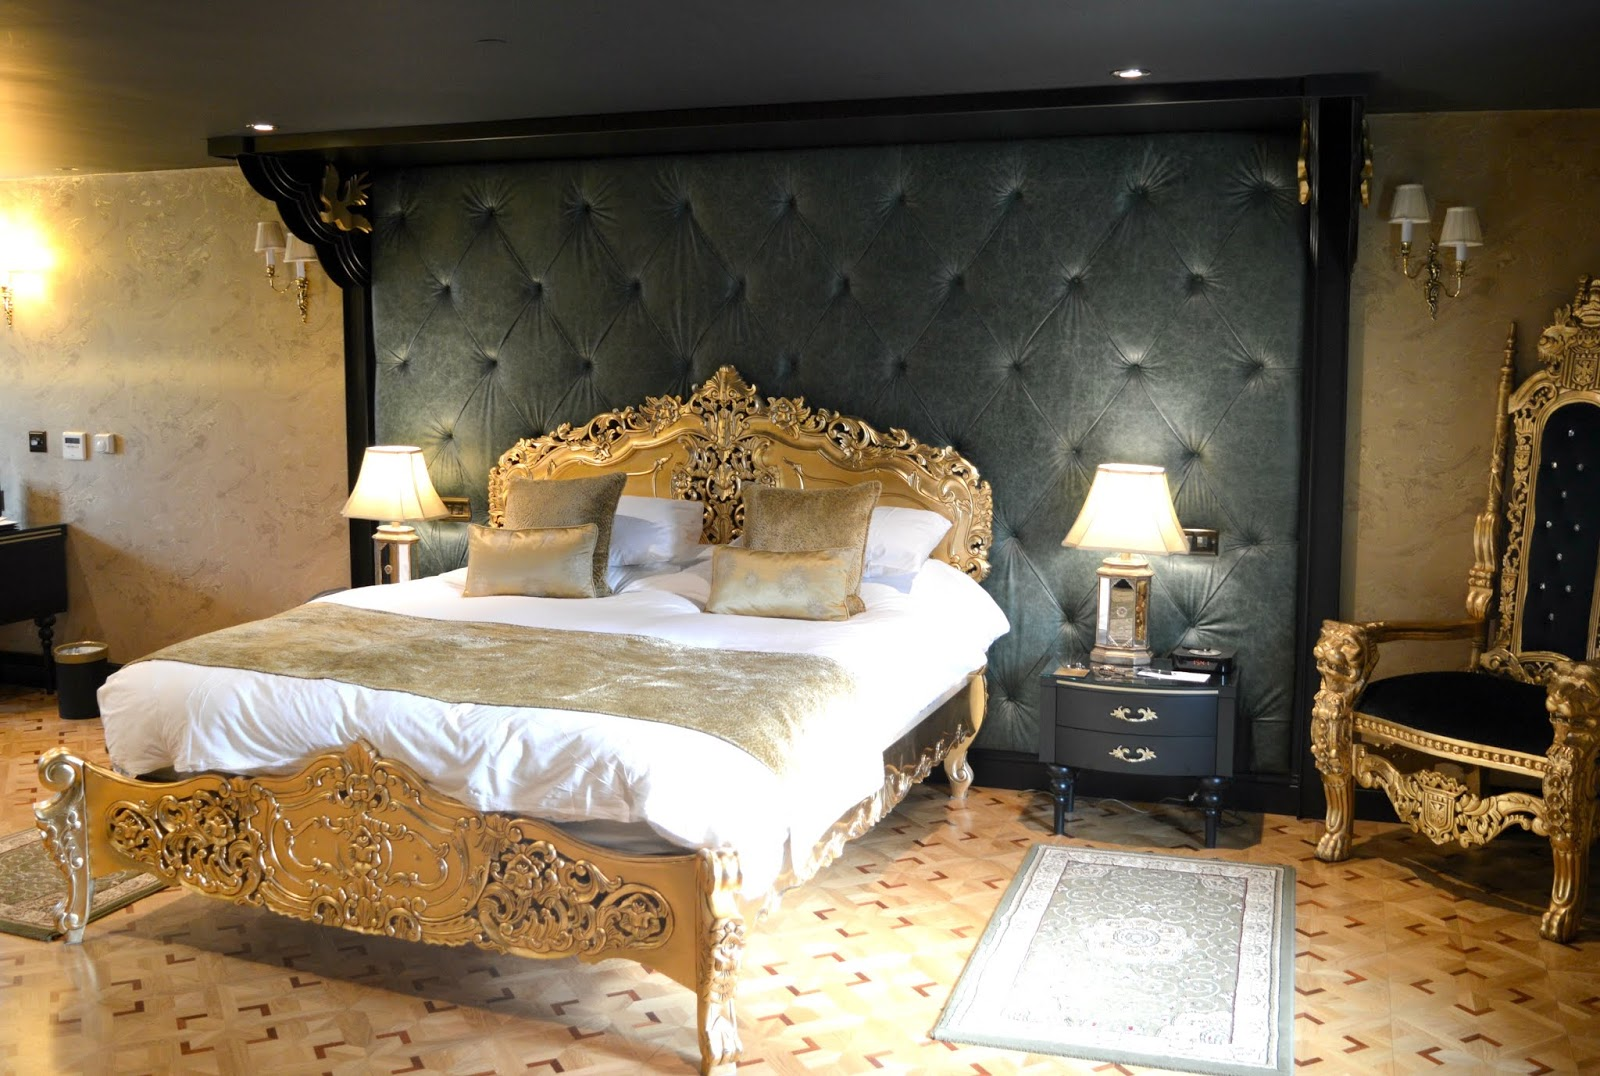 Luxury Room at Crab & Lobster, Thirsk